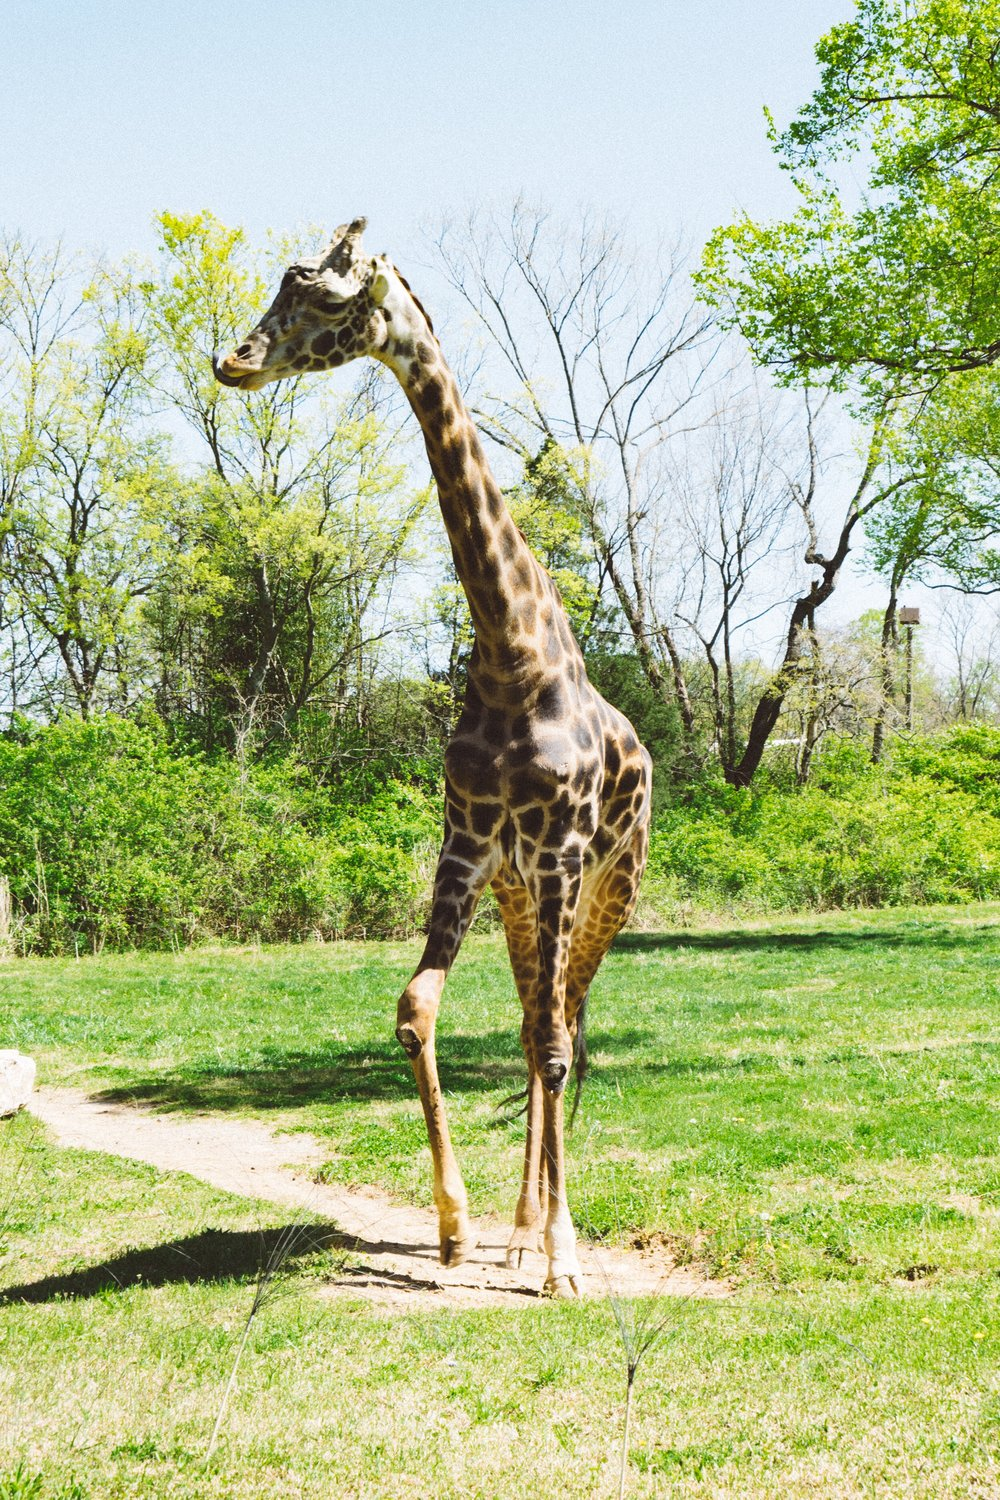 Giraffe at The Nashville Zoo. Photo by The Explorer Dad